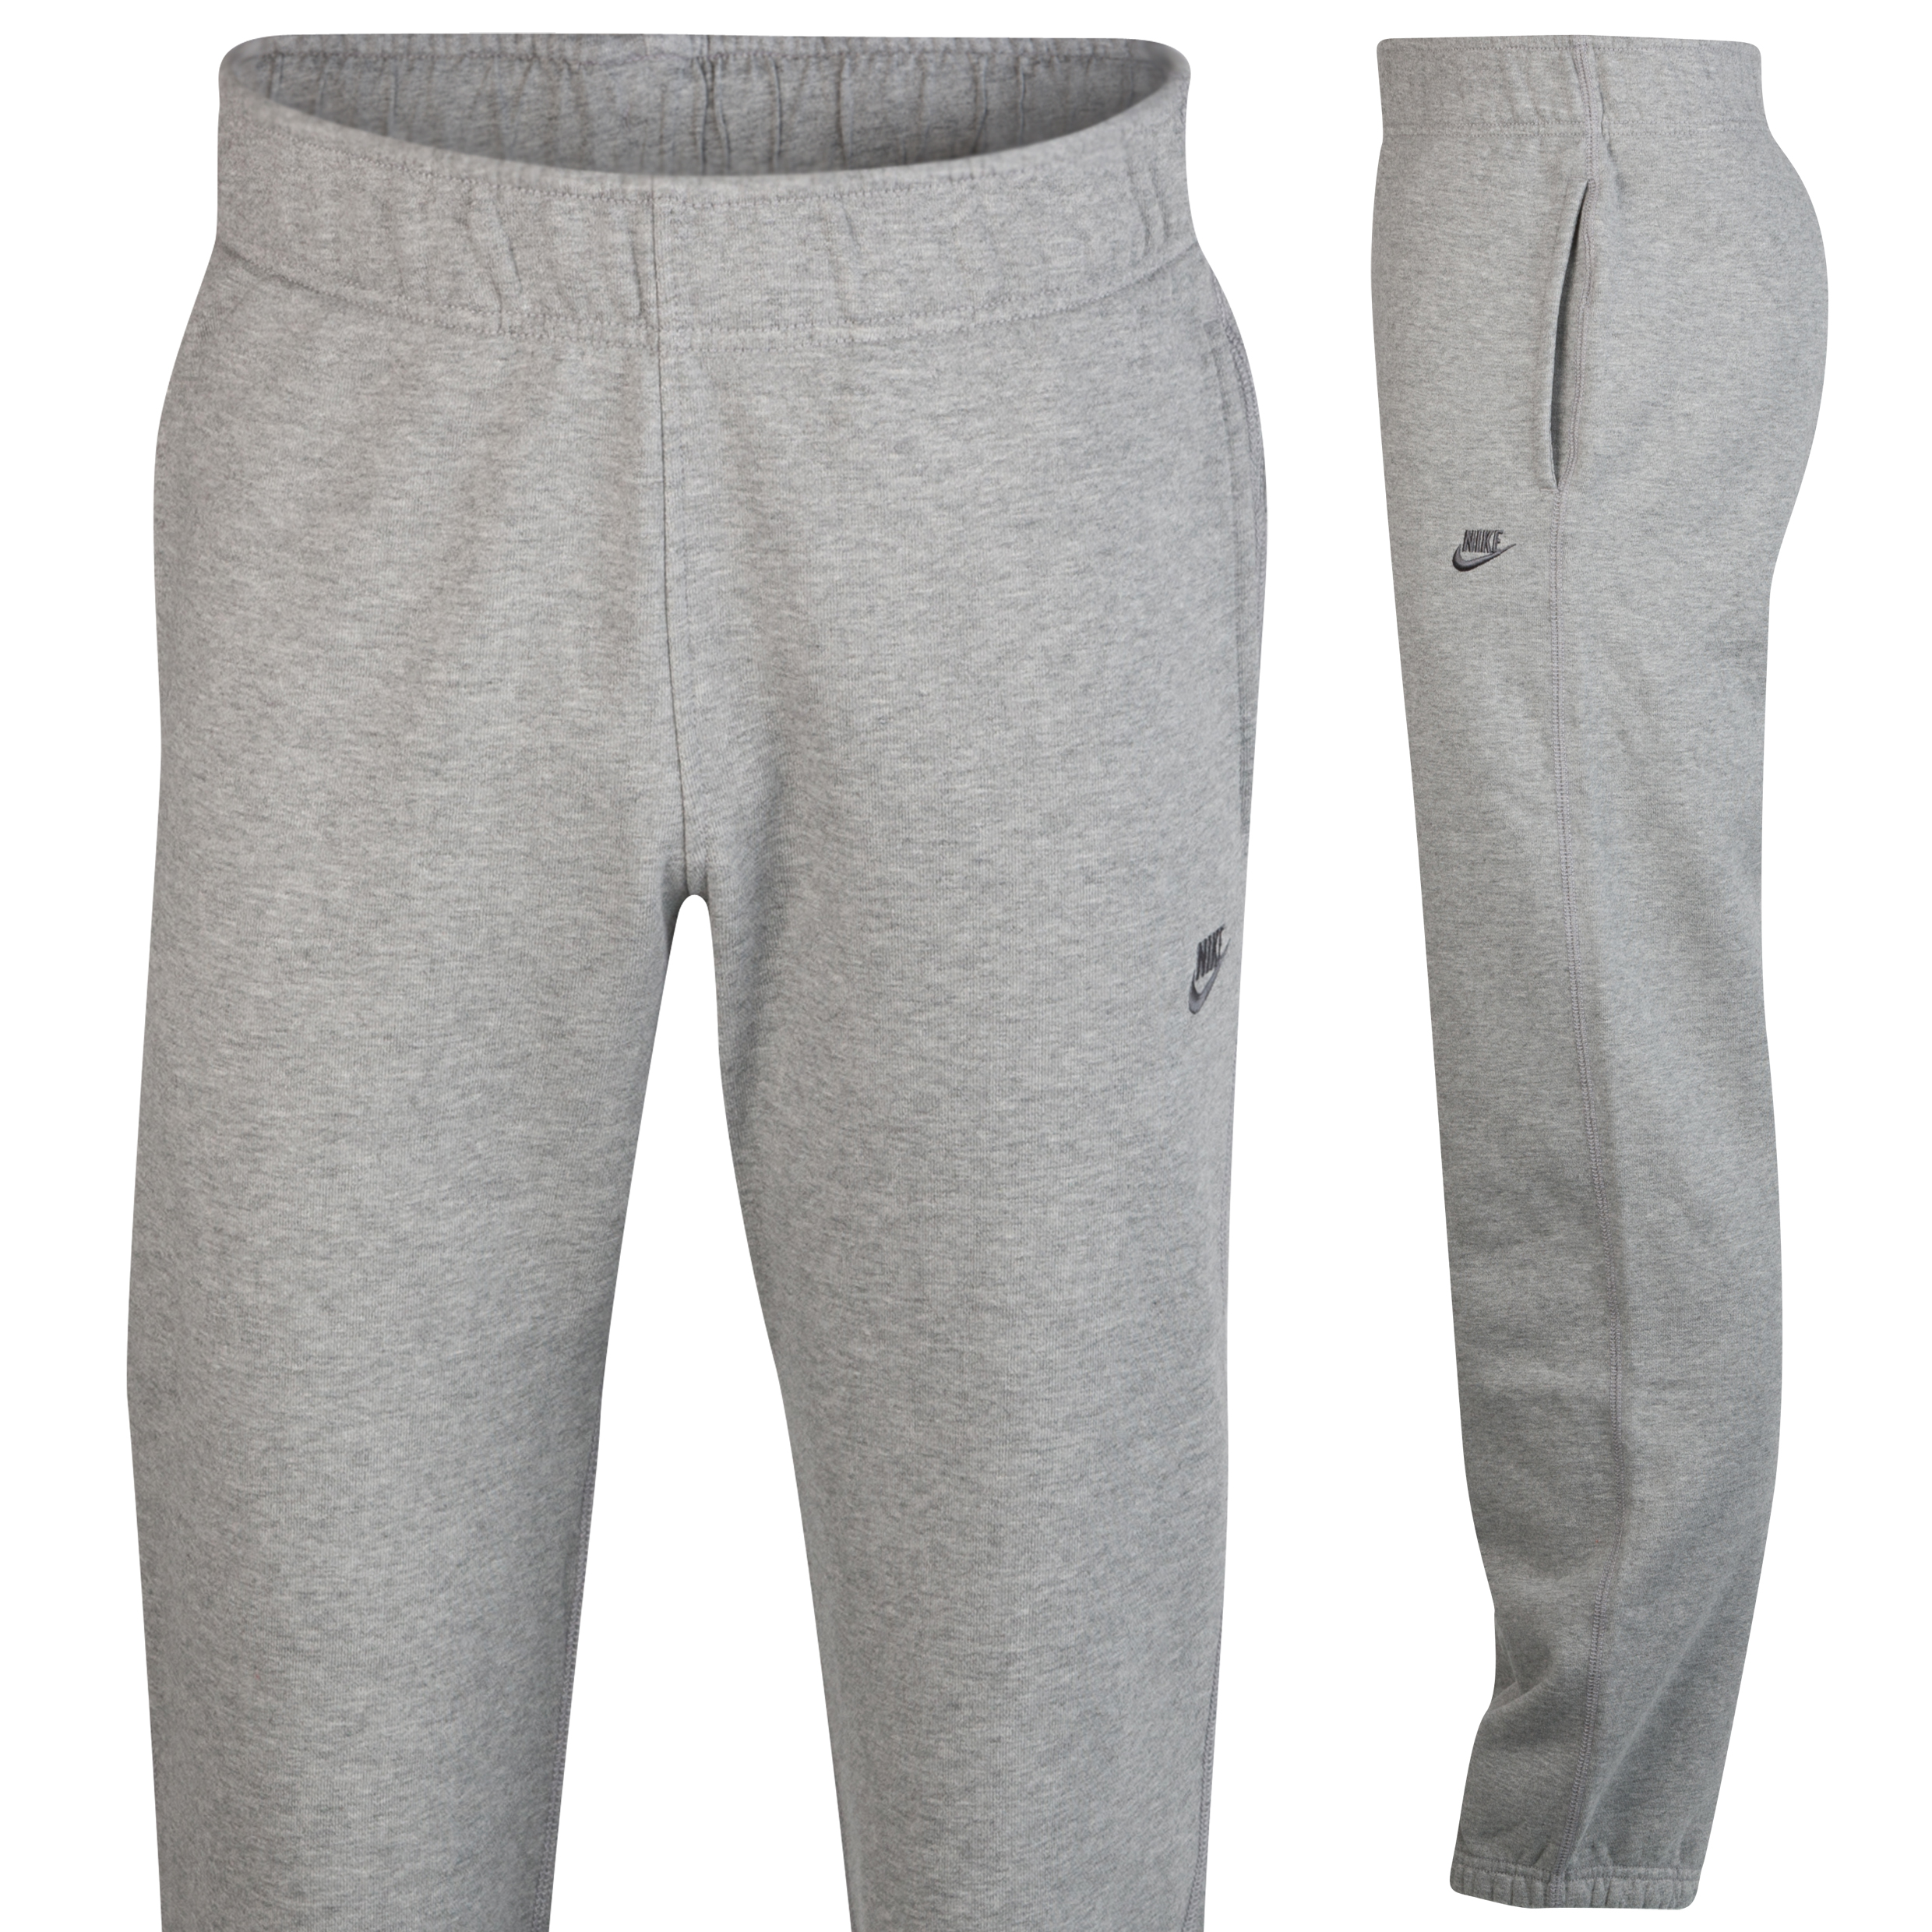 Nike Contender Cuffed Pant - Dk Grey Heather/Dark Grey